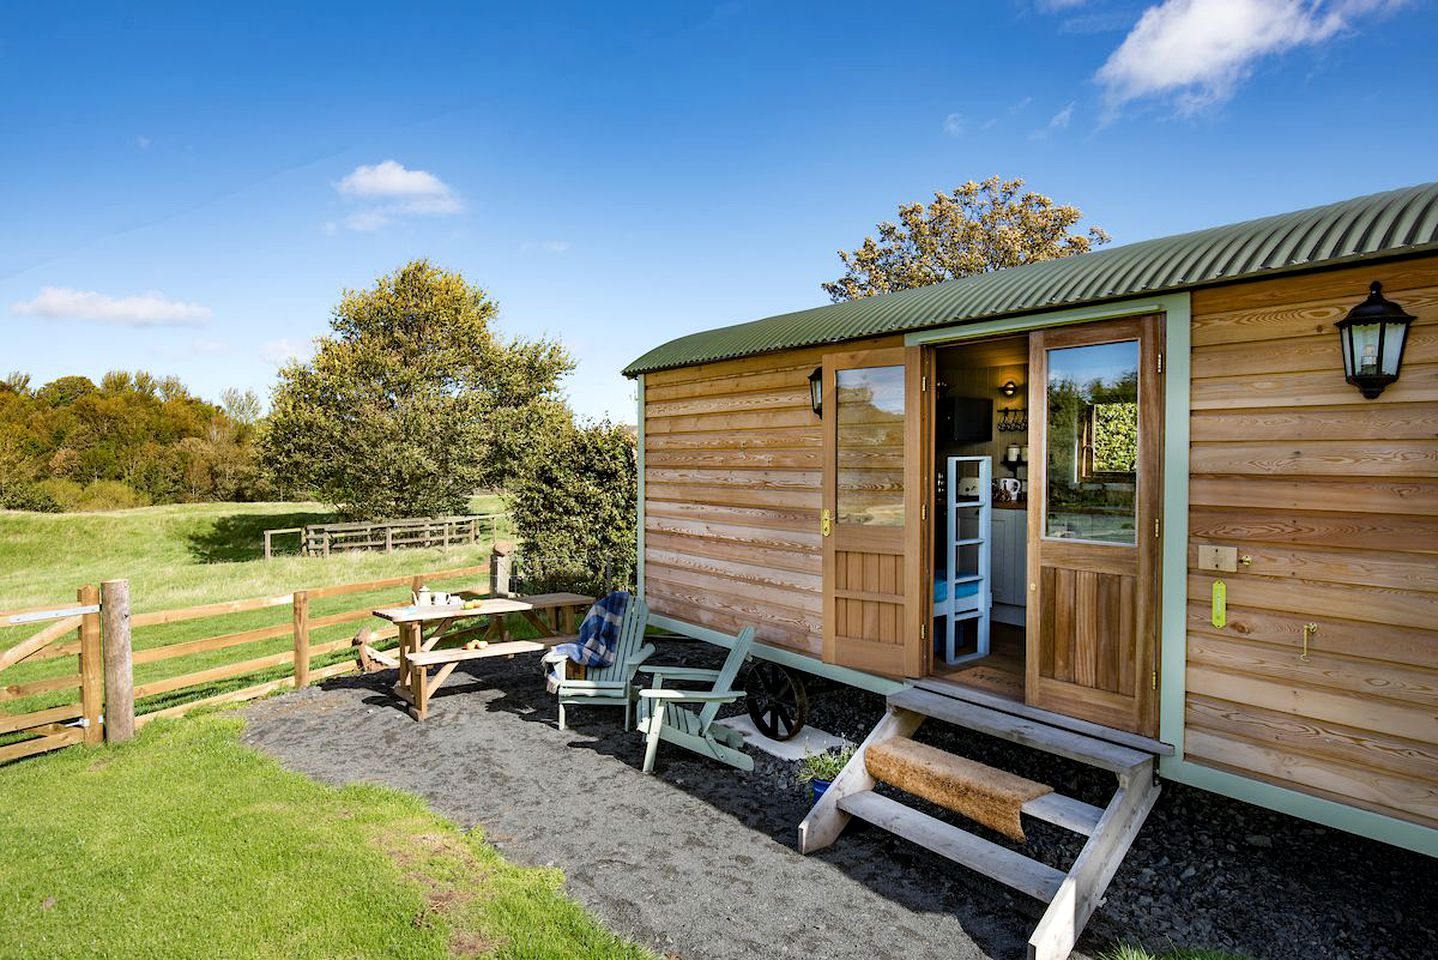 Shepherd's hut rental for glamping in England